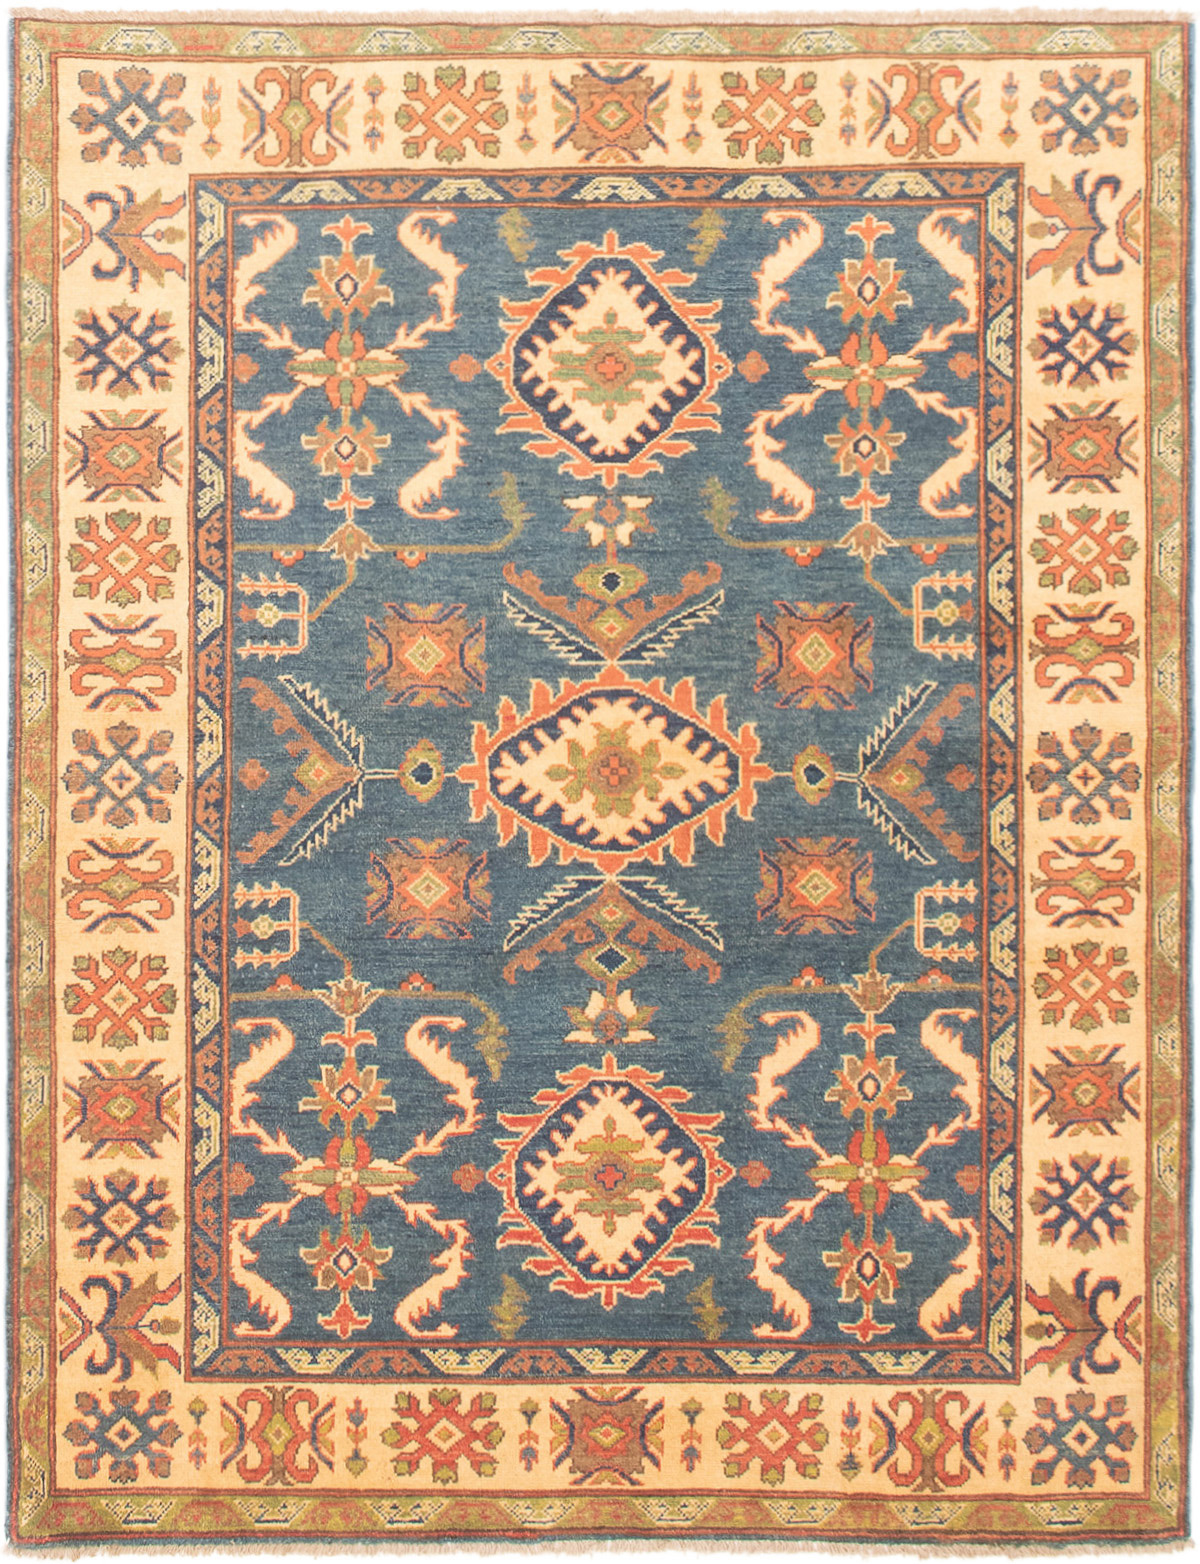 """Hand-knotted Finest Gazni Navy Blue Wool Rug 5'1"""" x 6'4""""  Size: 5'1"""" x 6'4"""""""